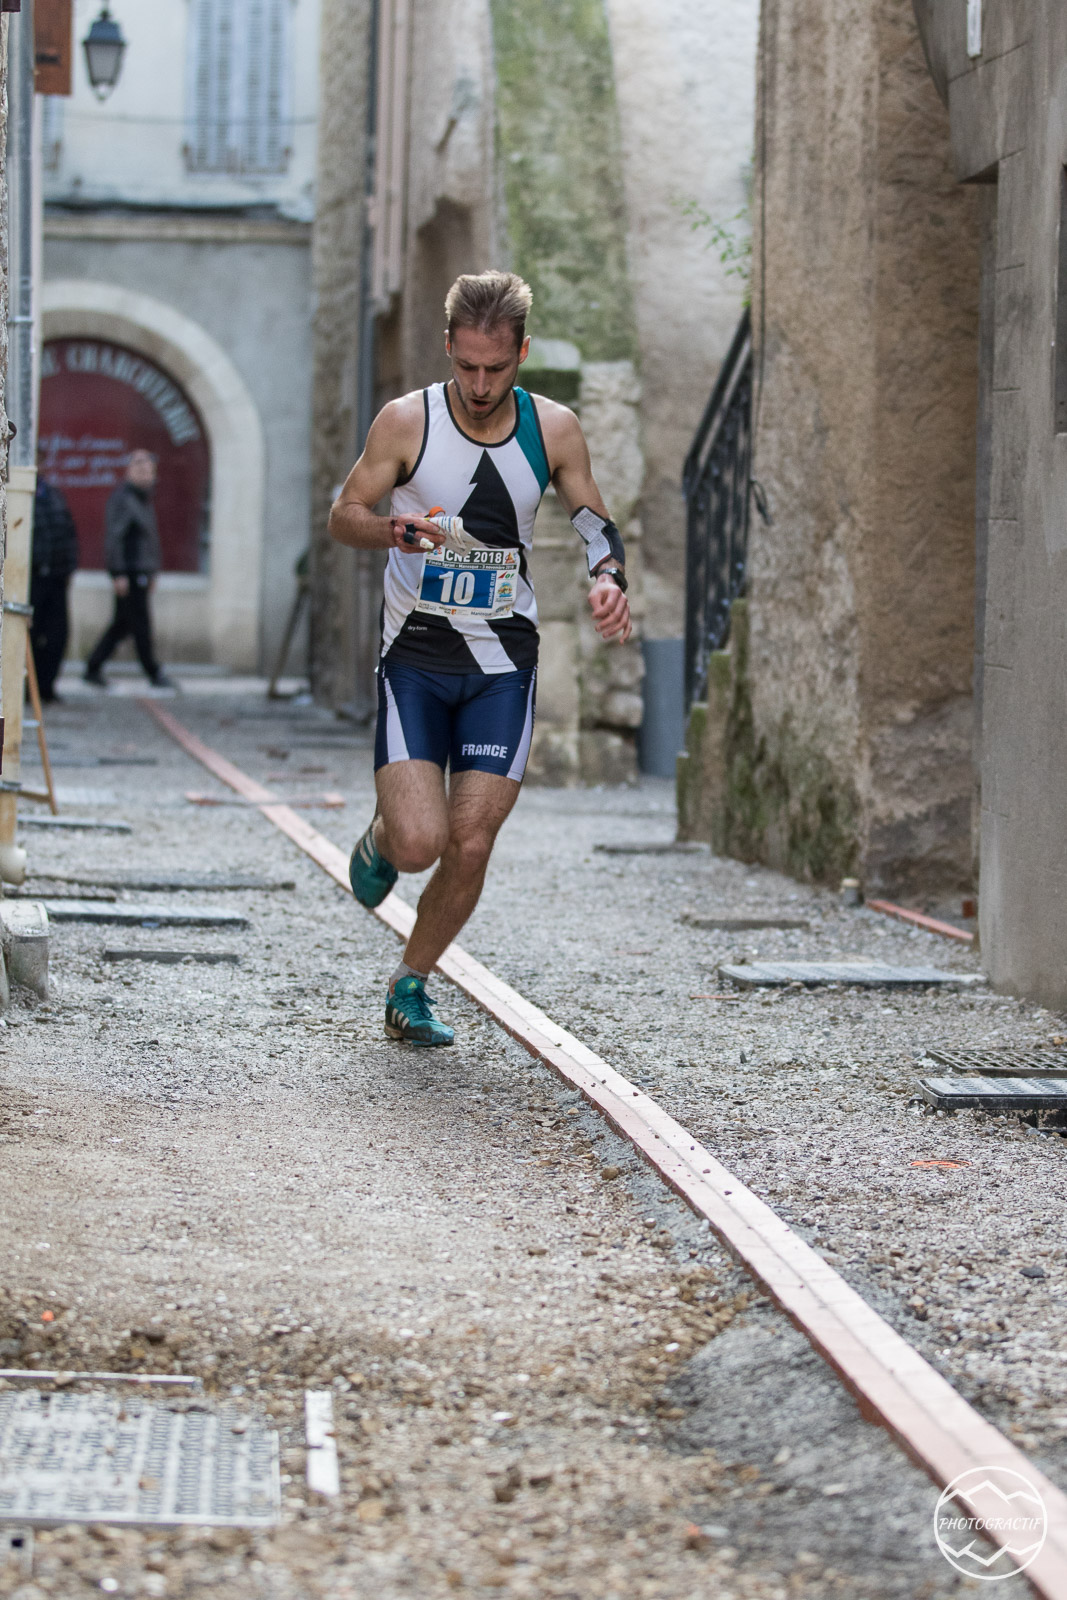 CDF Sprint CO Manosque 2018 (75)